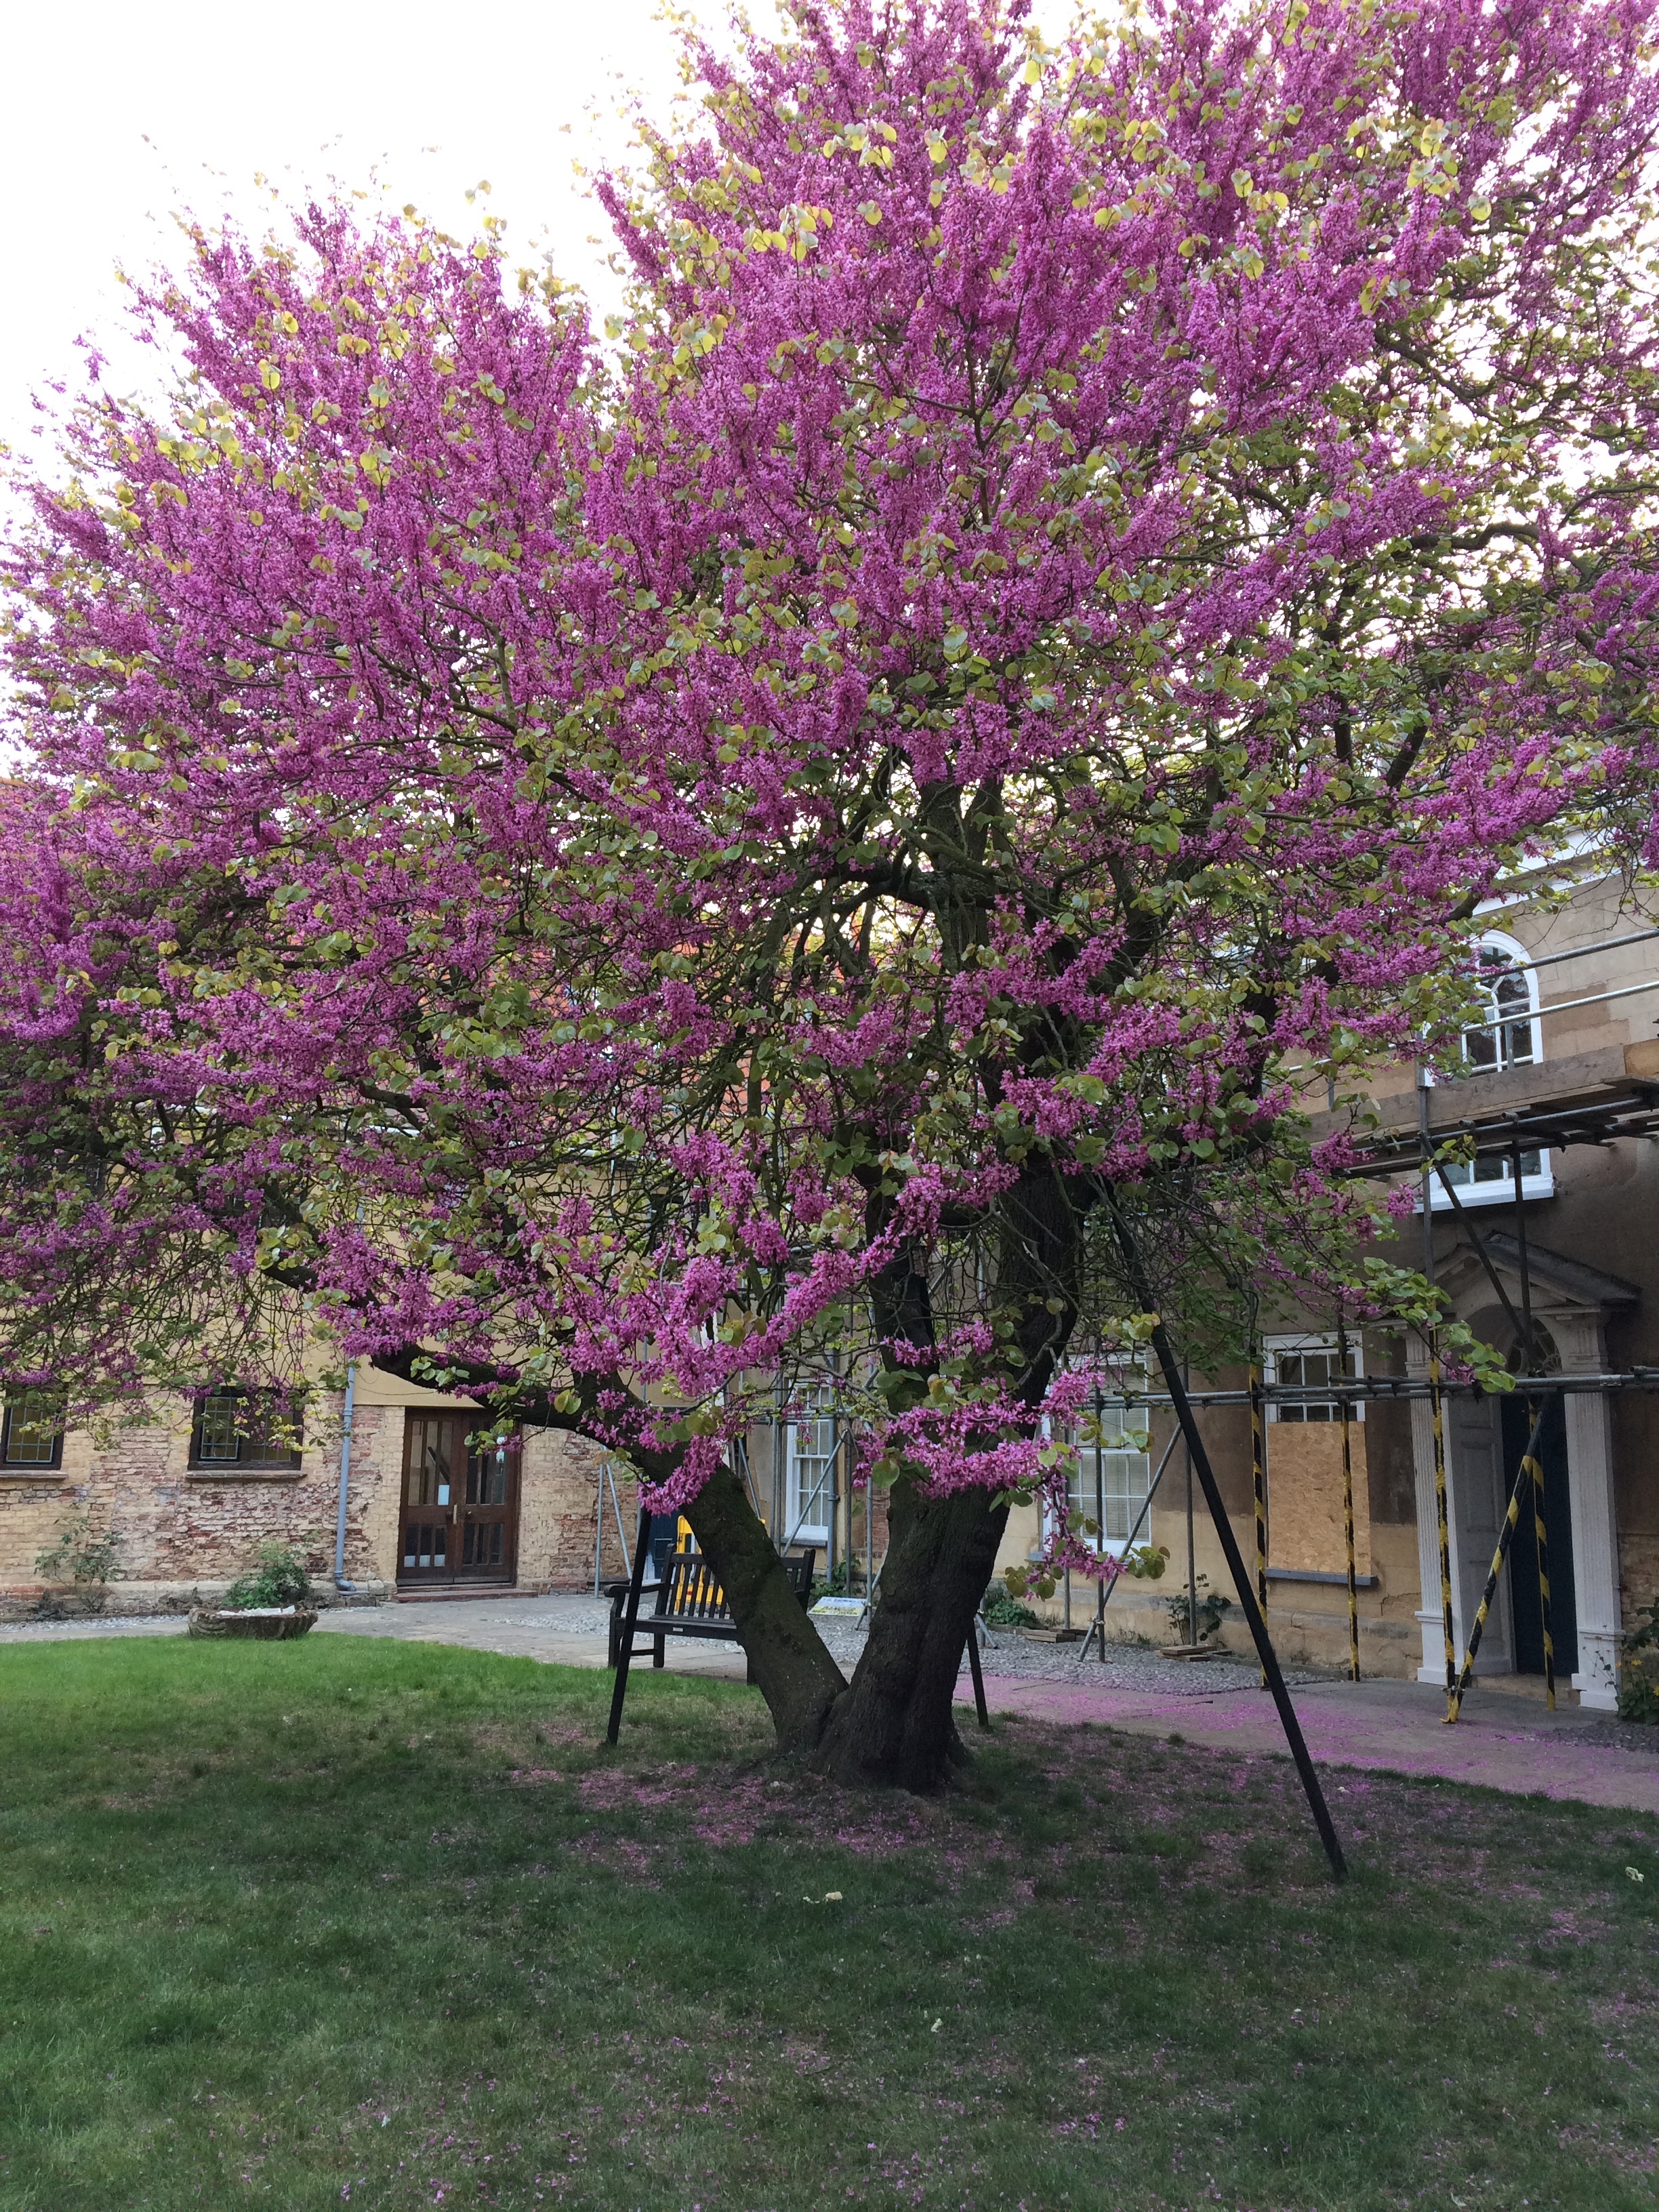 This spectacular Judas Tree fills the courtyard of Thoresby College, one of the important historic buildings in King's Lynn, home of the King's Lynn Preservation Society and now used for celebrations, courses, meetings and events. The tree rises to the occasion being a landmark in its own right  https://www.geograph.org.uk/photo/2979166